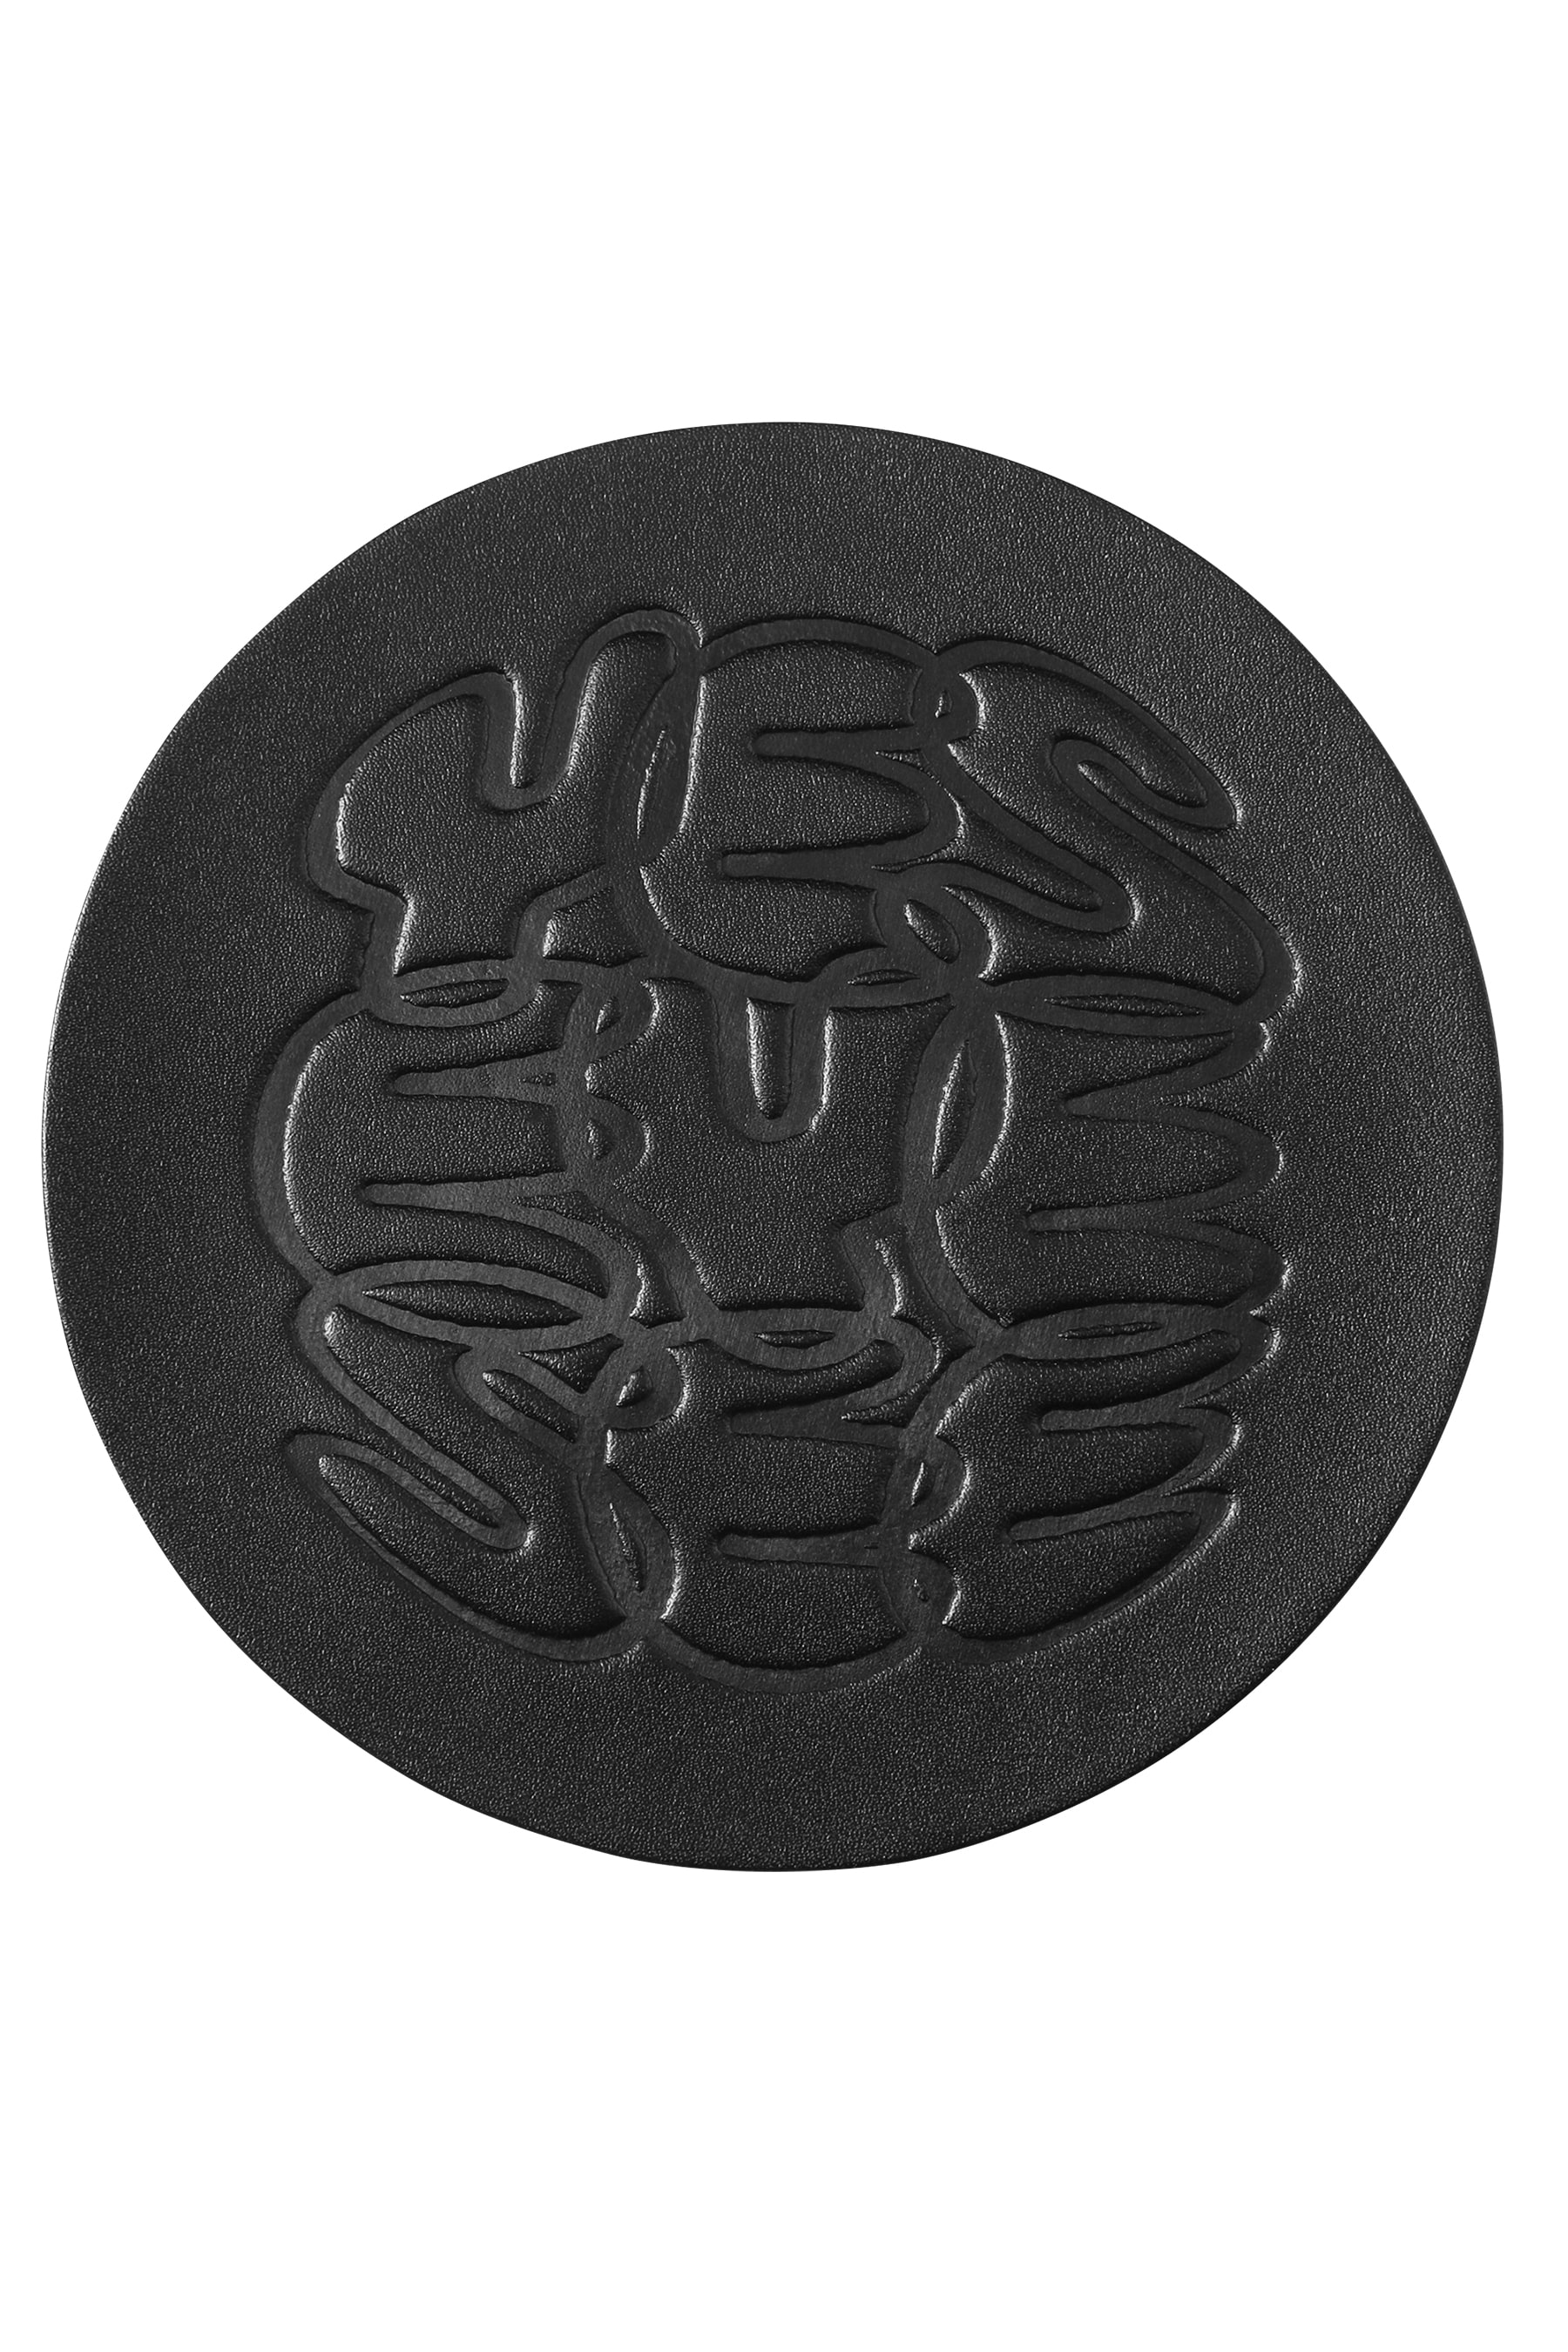 Y.E.S Leather Coaster Black